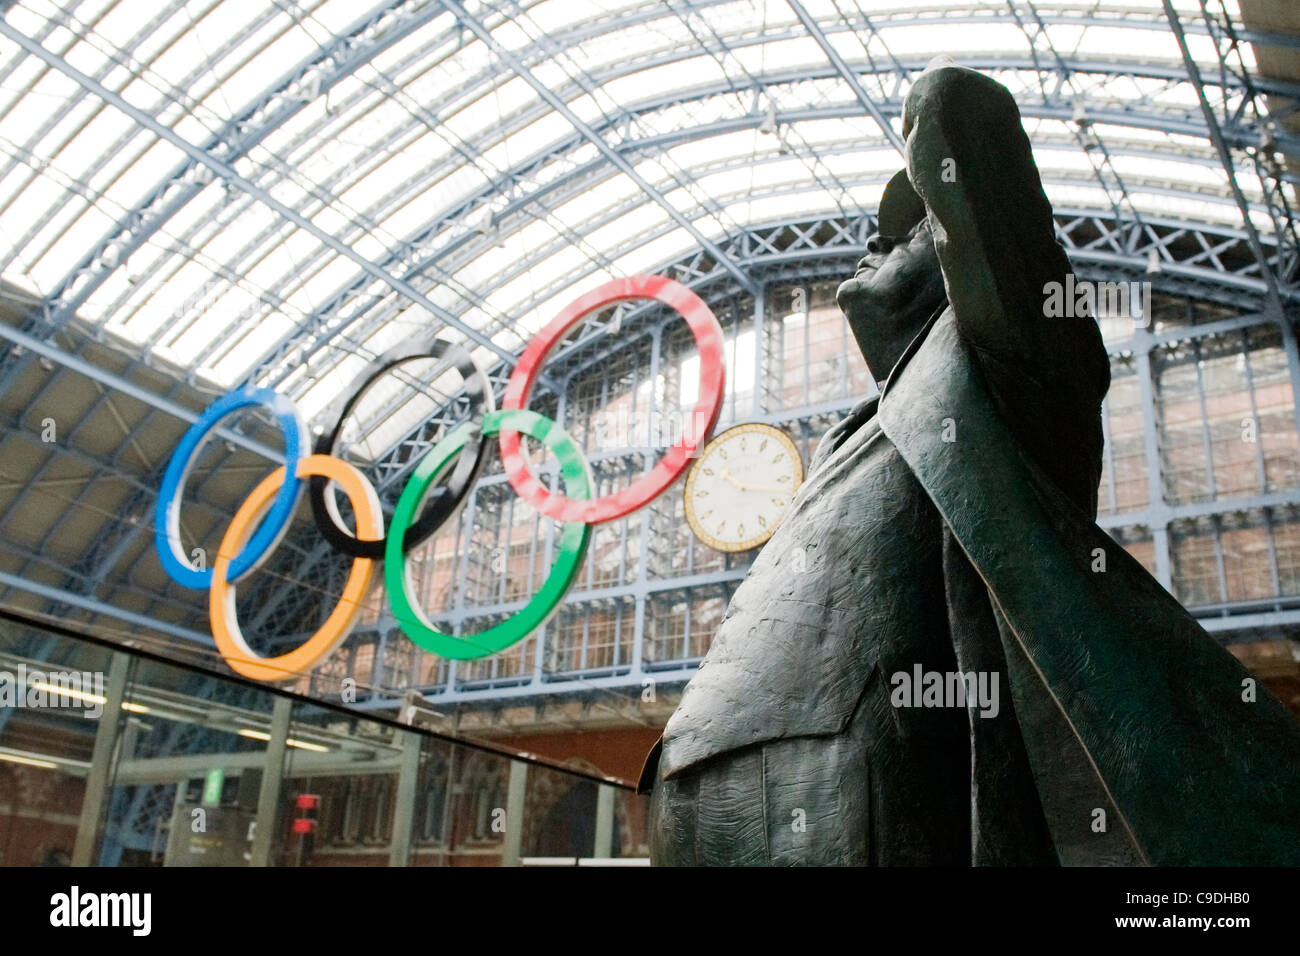 London , St Pancras Station bronze statue of the Poet Laureate Sir John Betjeman 1906 to 1984 Olympic rings - Stock Image